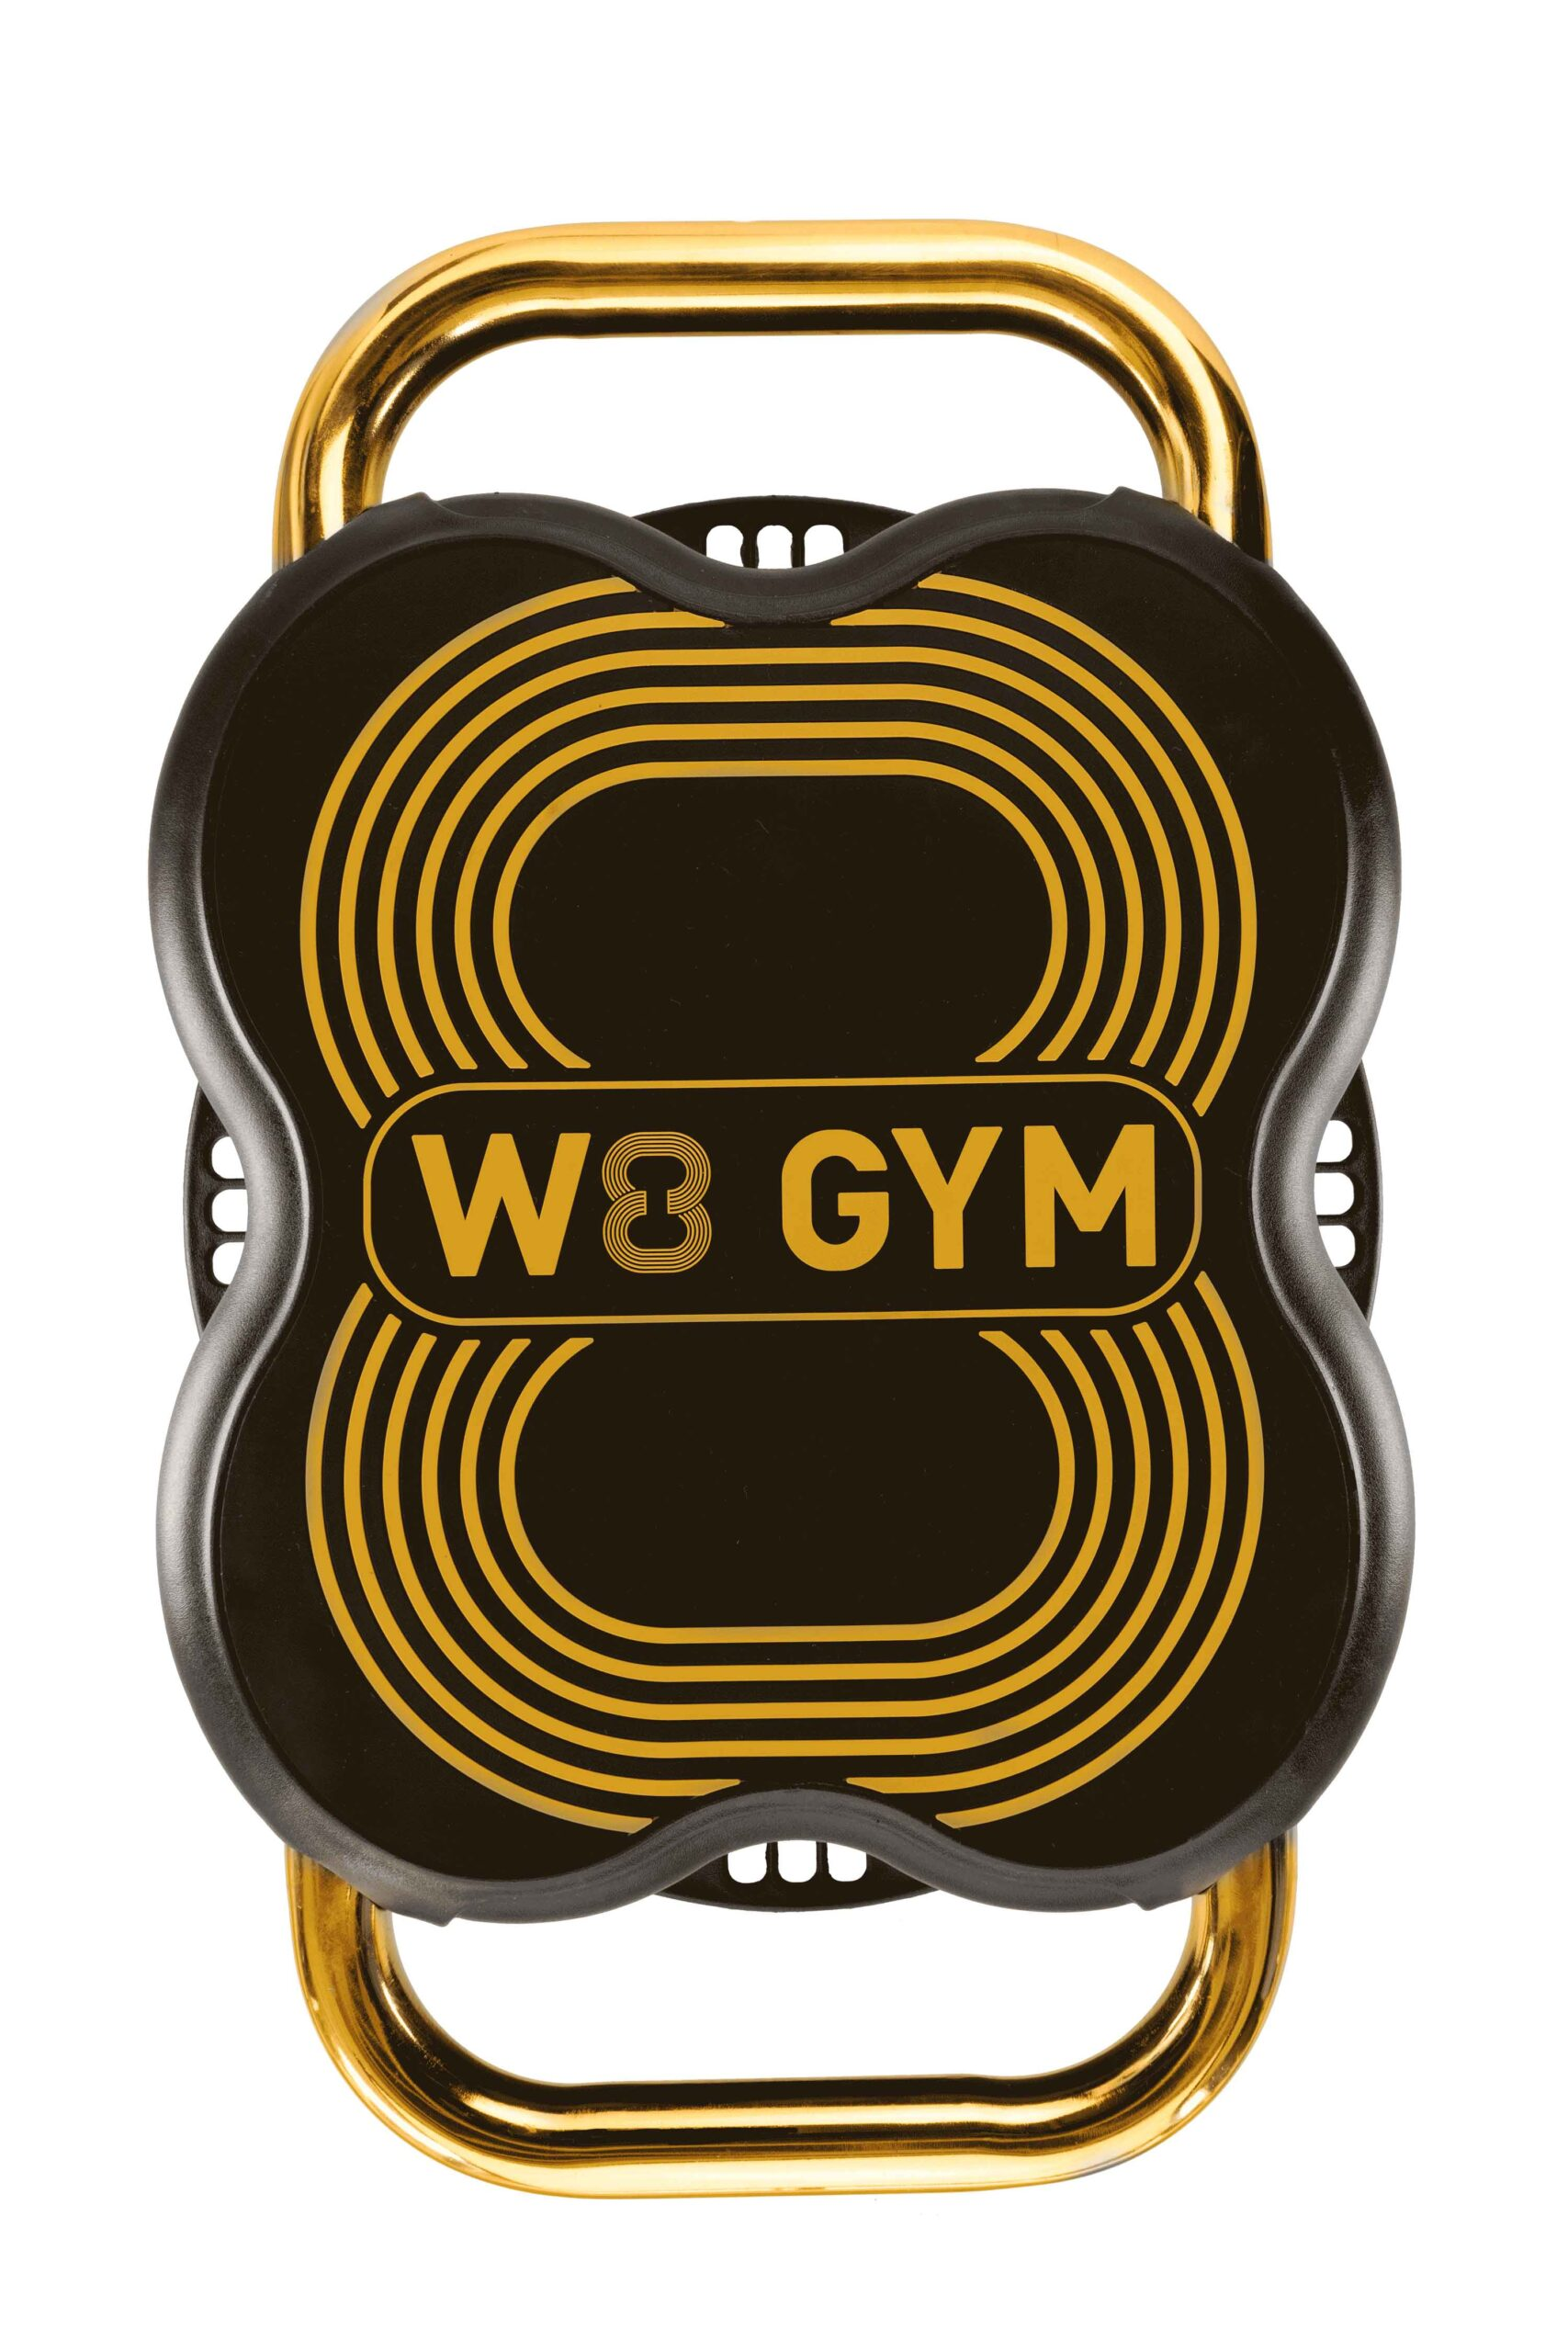 W8 GYM Gold Limited Edition